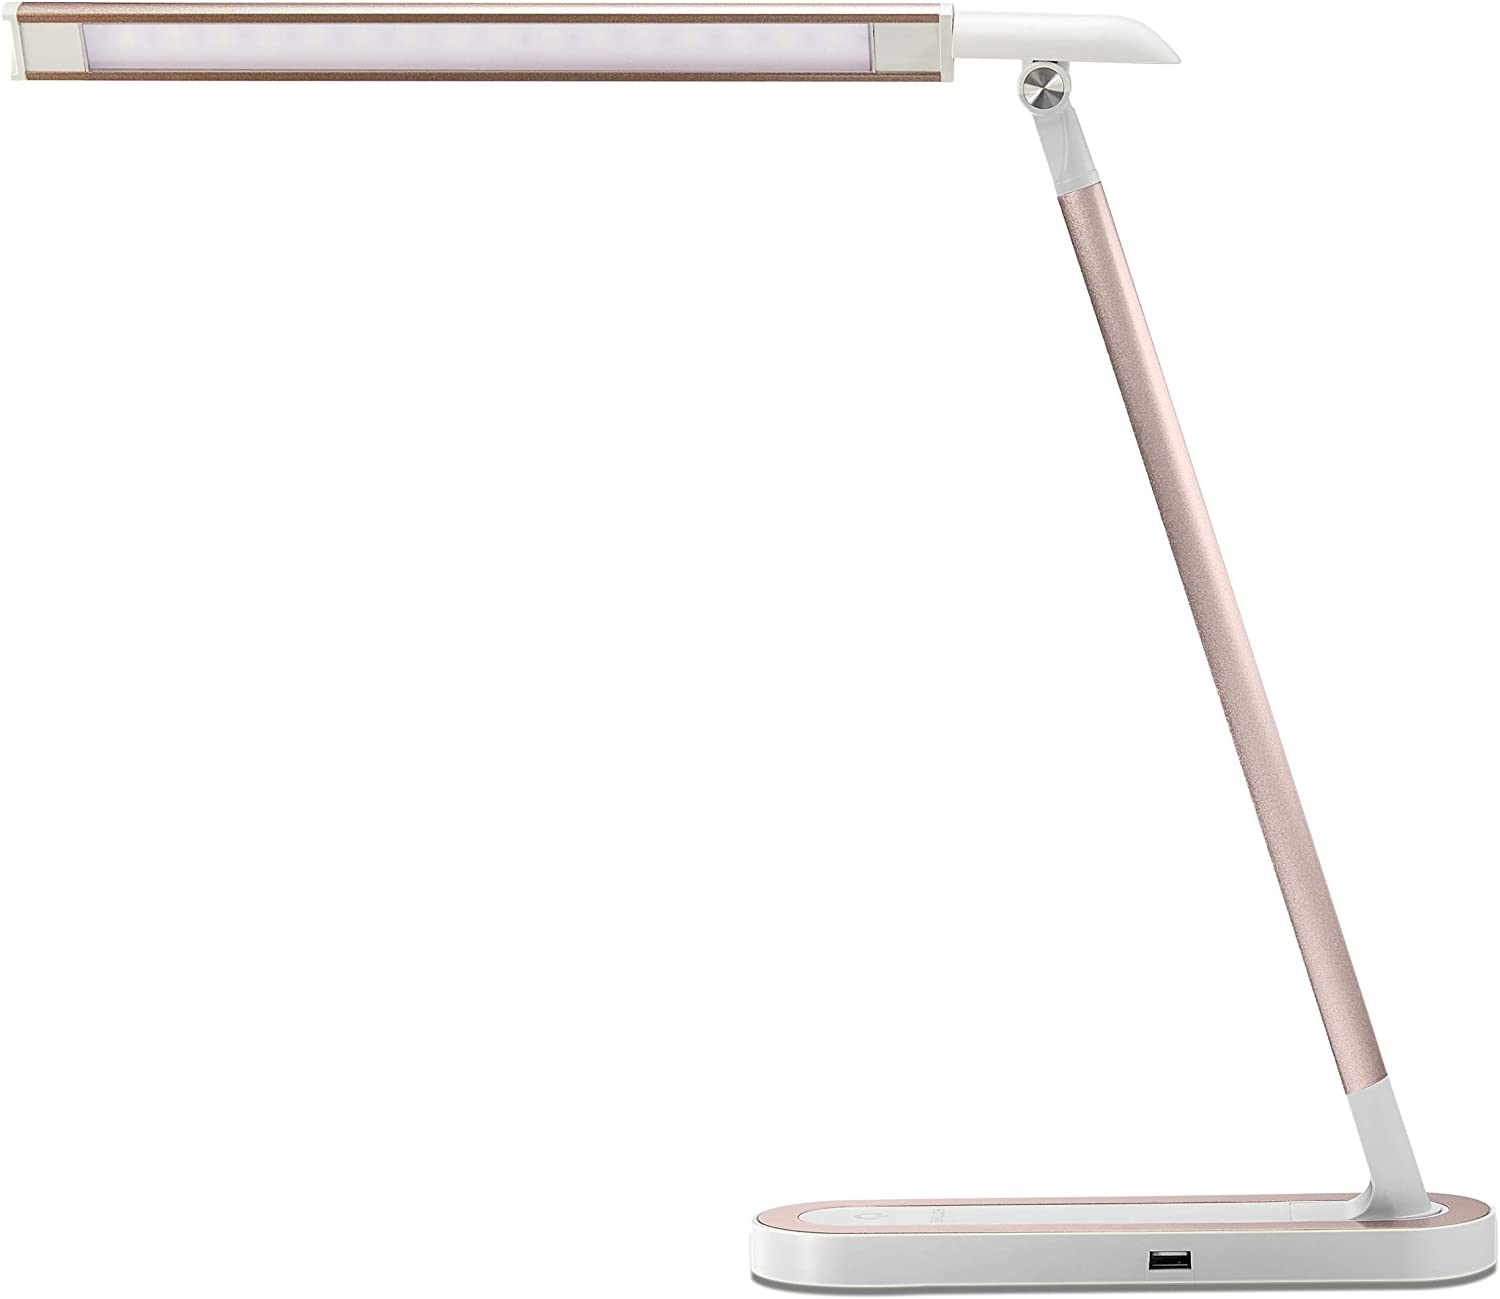 HDTIME Pink Desk Light Desk Lamp with USB Charging Port Touch Control 3 Lighting Modes with 3 Brightness Levels 32PCS LEDs for Home Office